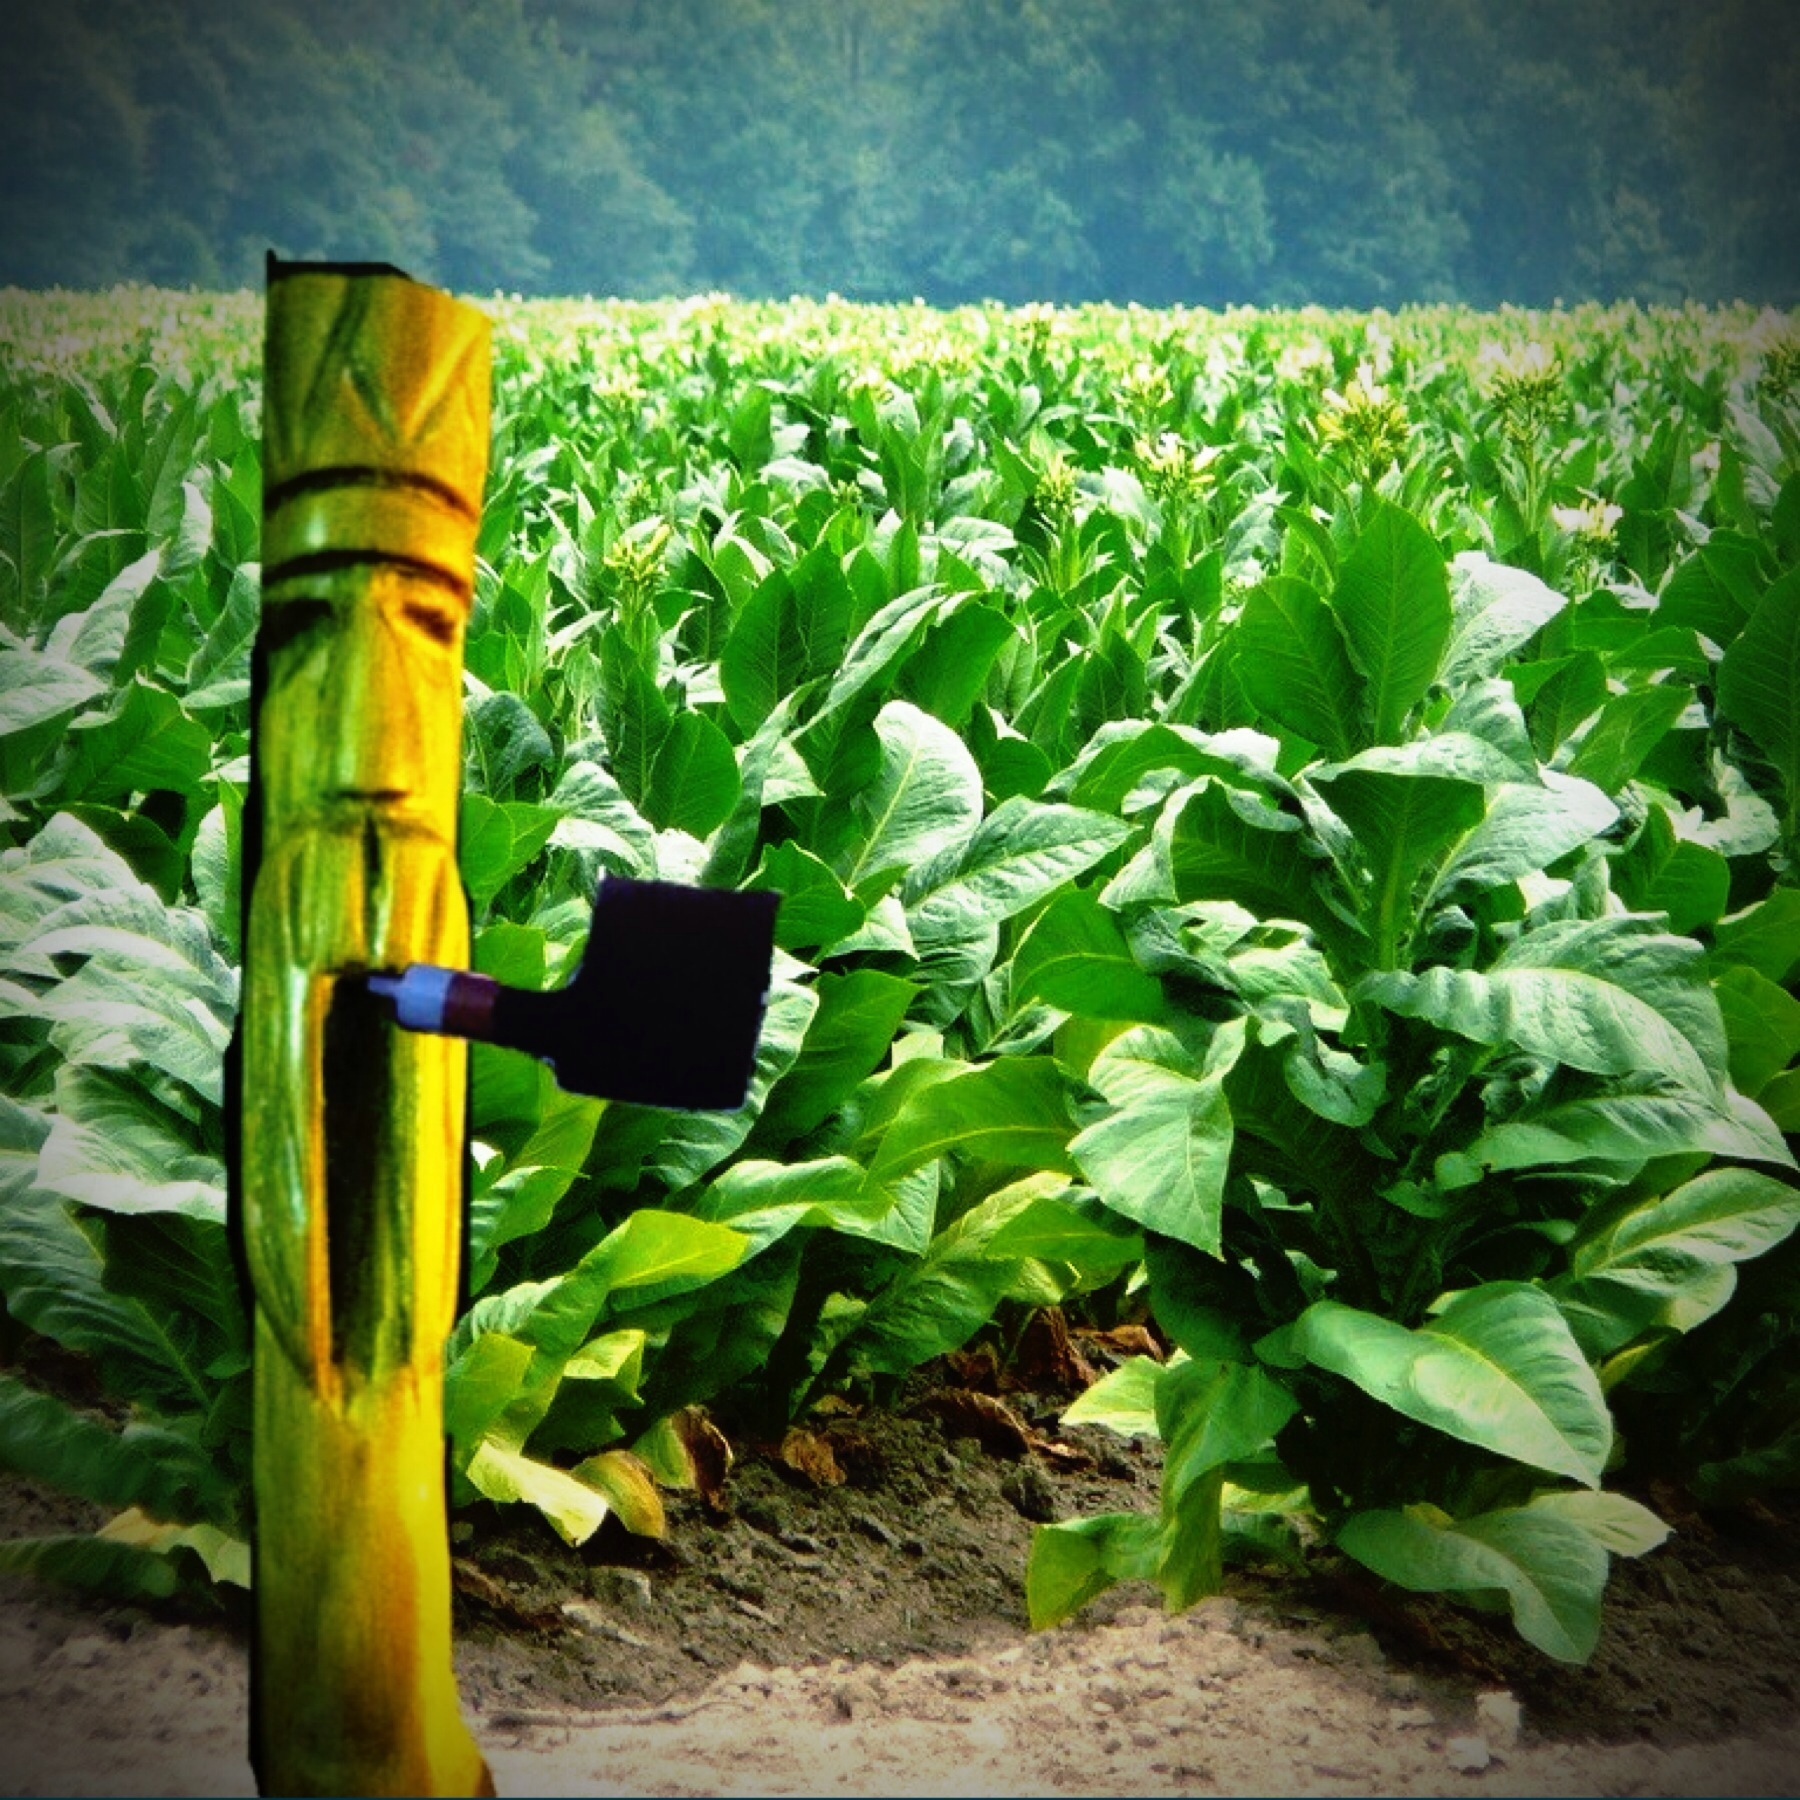 Guarding the Tobacco fields